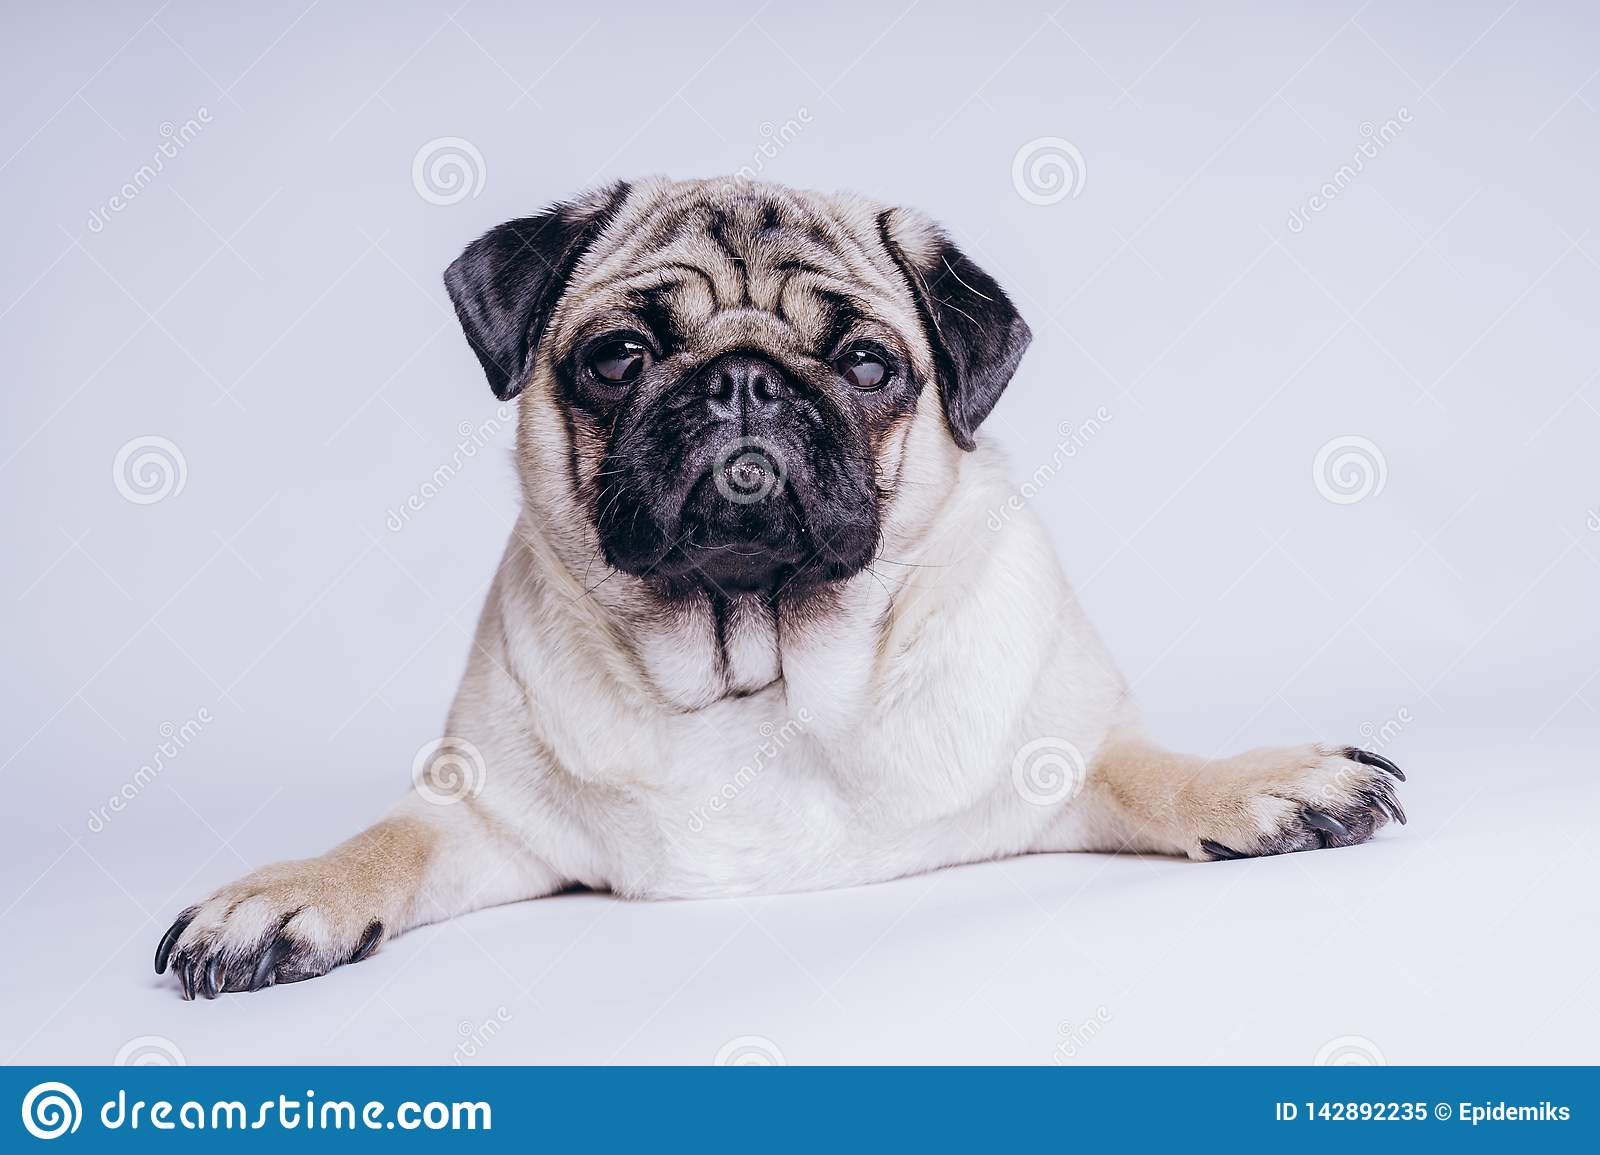 Funny Pug Puppy On White Background Portrait Of A Cute Pug Dog With Big Sad Eyes And A Questioning Look On A White Background Stock Image Image Of Space Standing 142892235